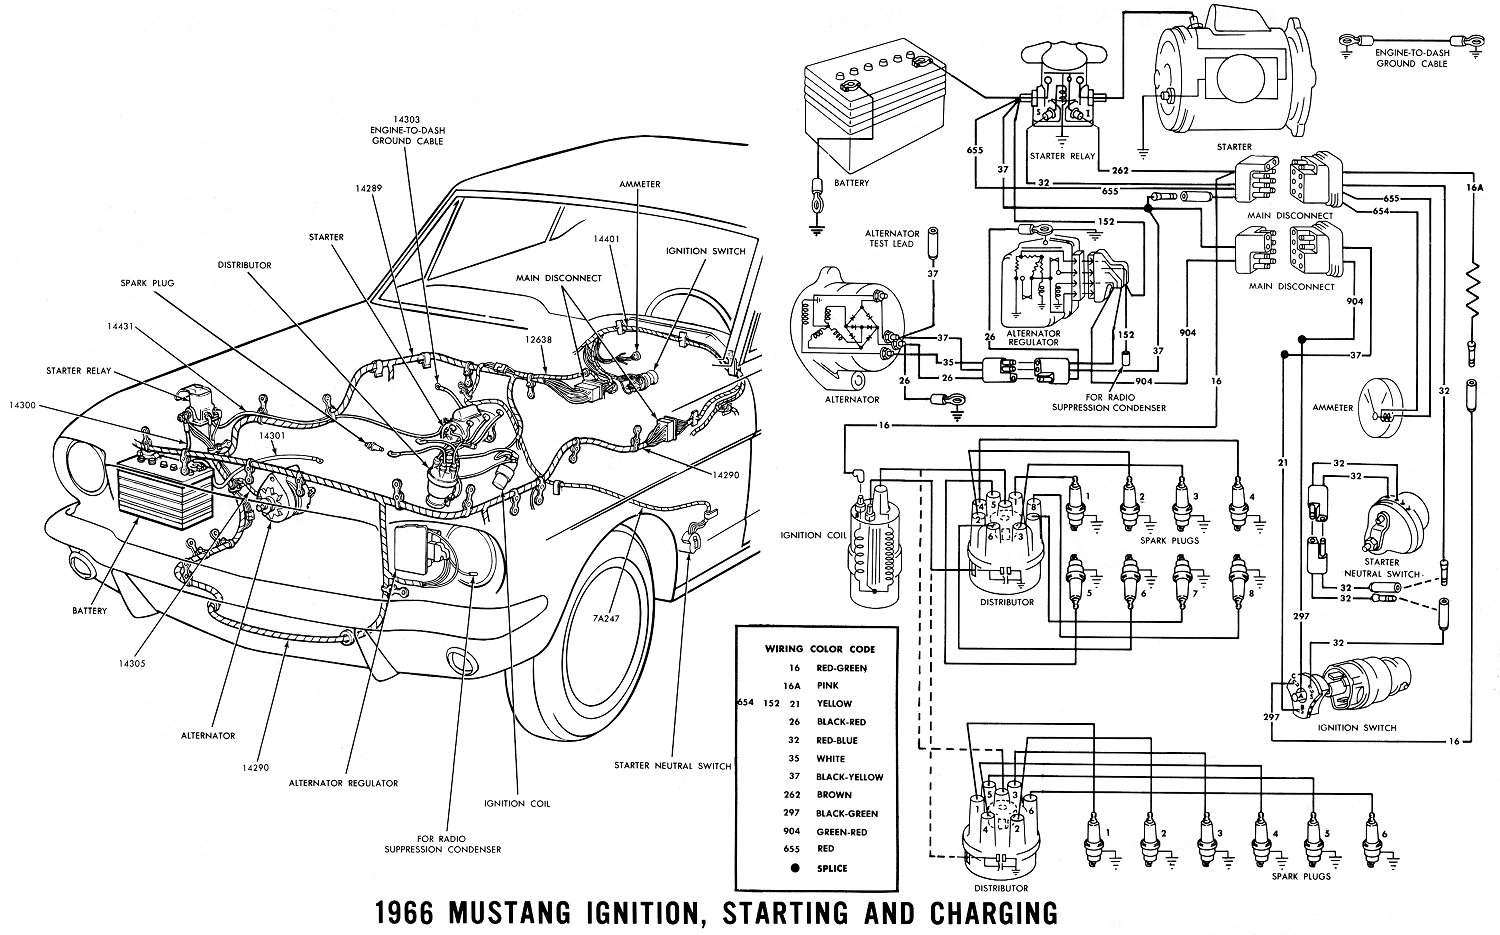 66ignit 1966 mustang wiring diagrams average joe restoration 1969 mustang ignition switch wiring diagram at webbmarketing.co